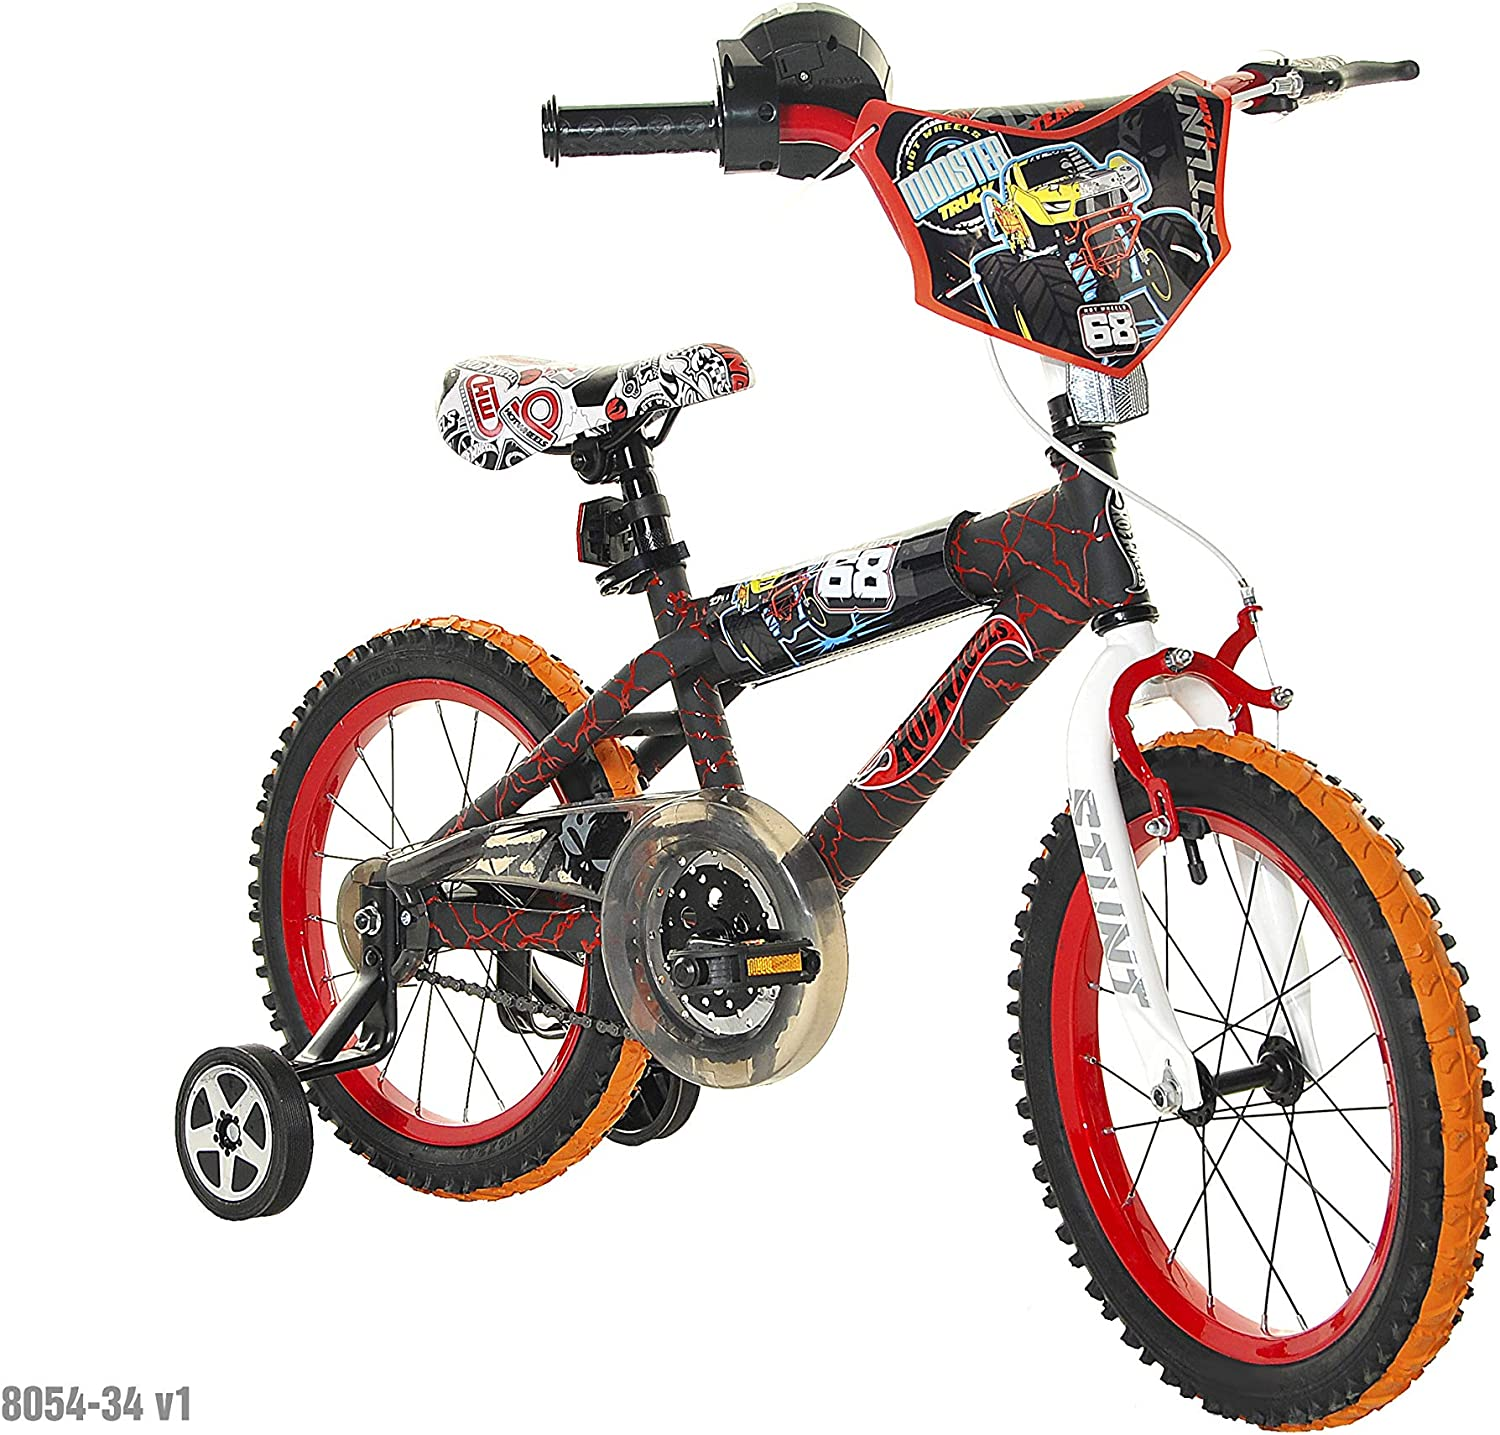 Top 12 Best Dirt Bike For Kids (2020 Reviews & Buying Guide) 1